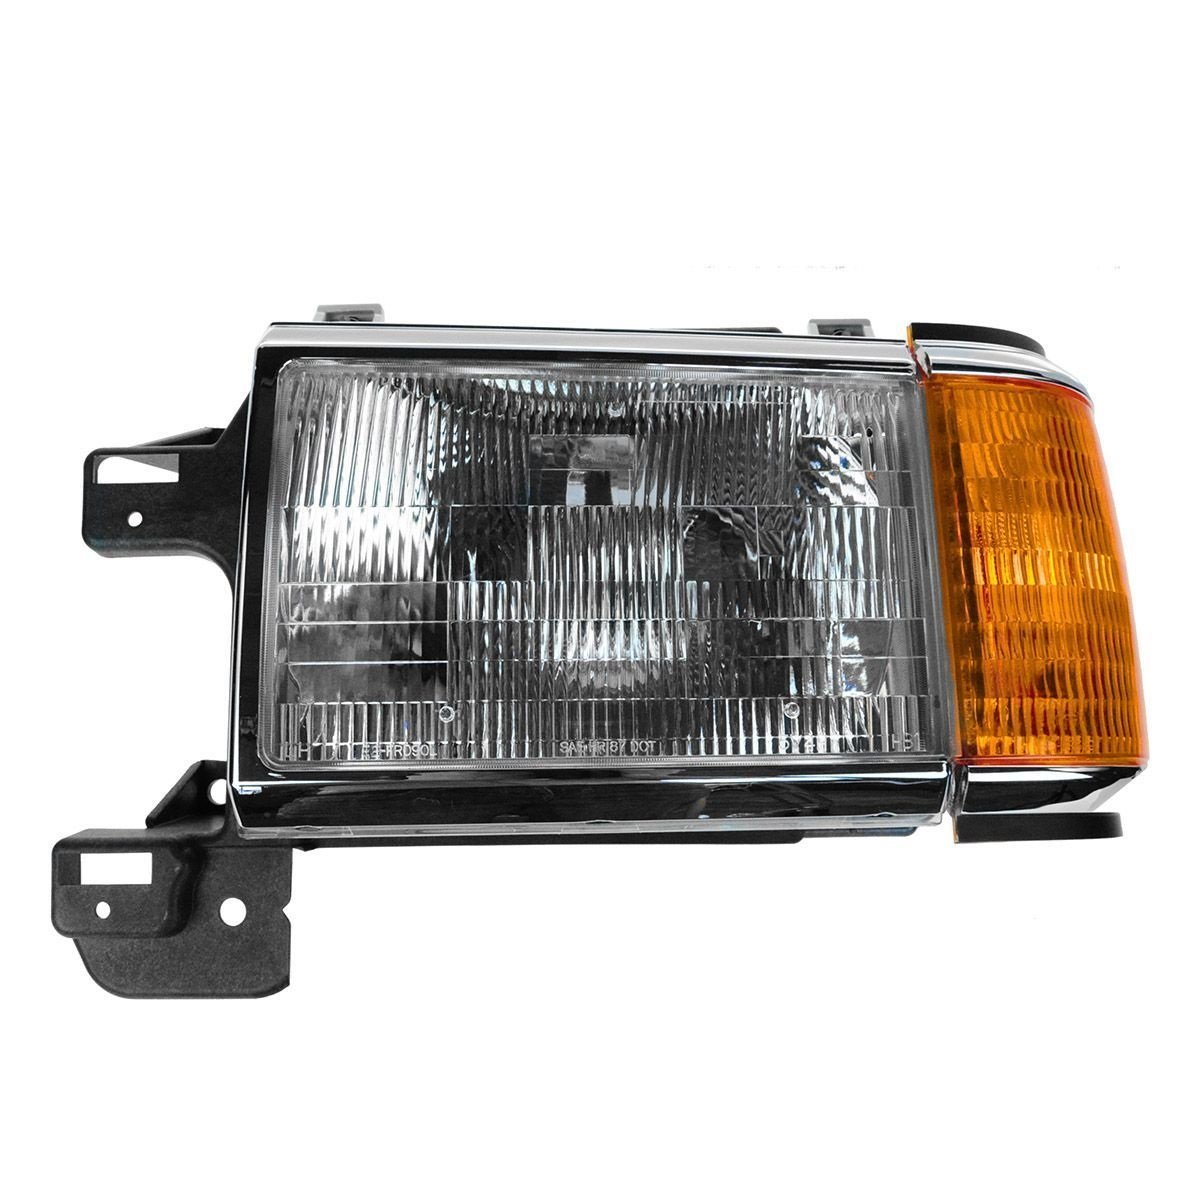 Fleetwood Bounder 1997-1999 RV Motorhome Pair (Left & Right) Replacement Front Headlights & Signal Lights by BuyRVlights (Image #2)